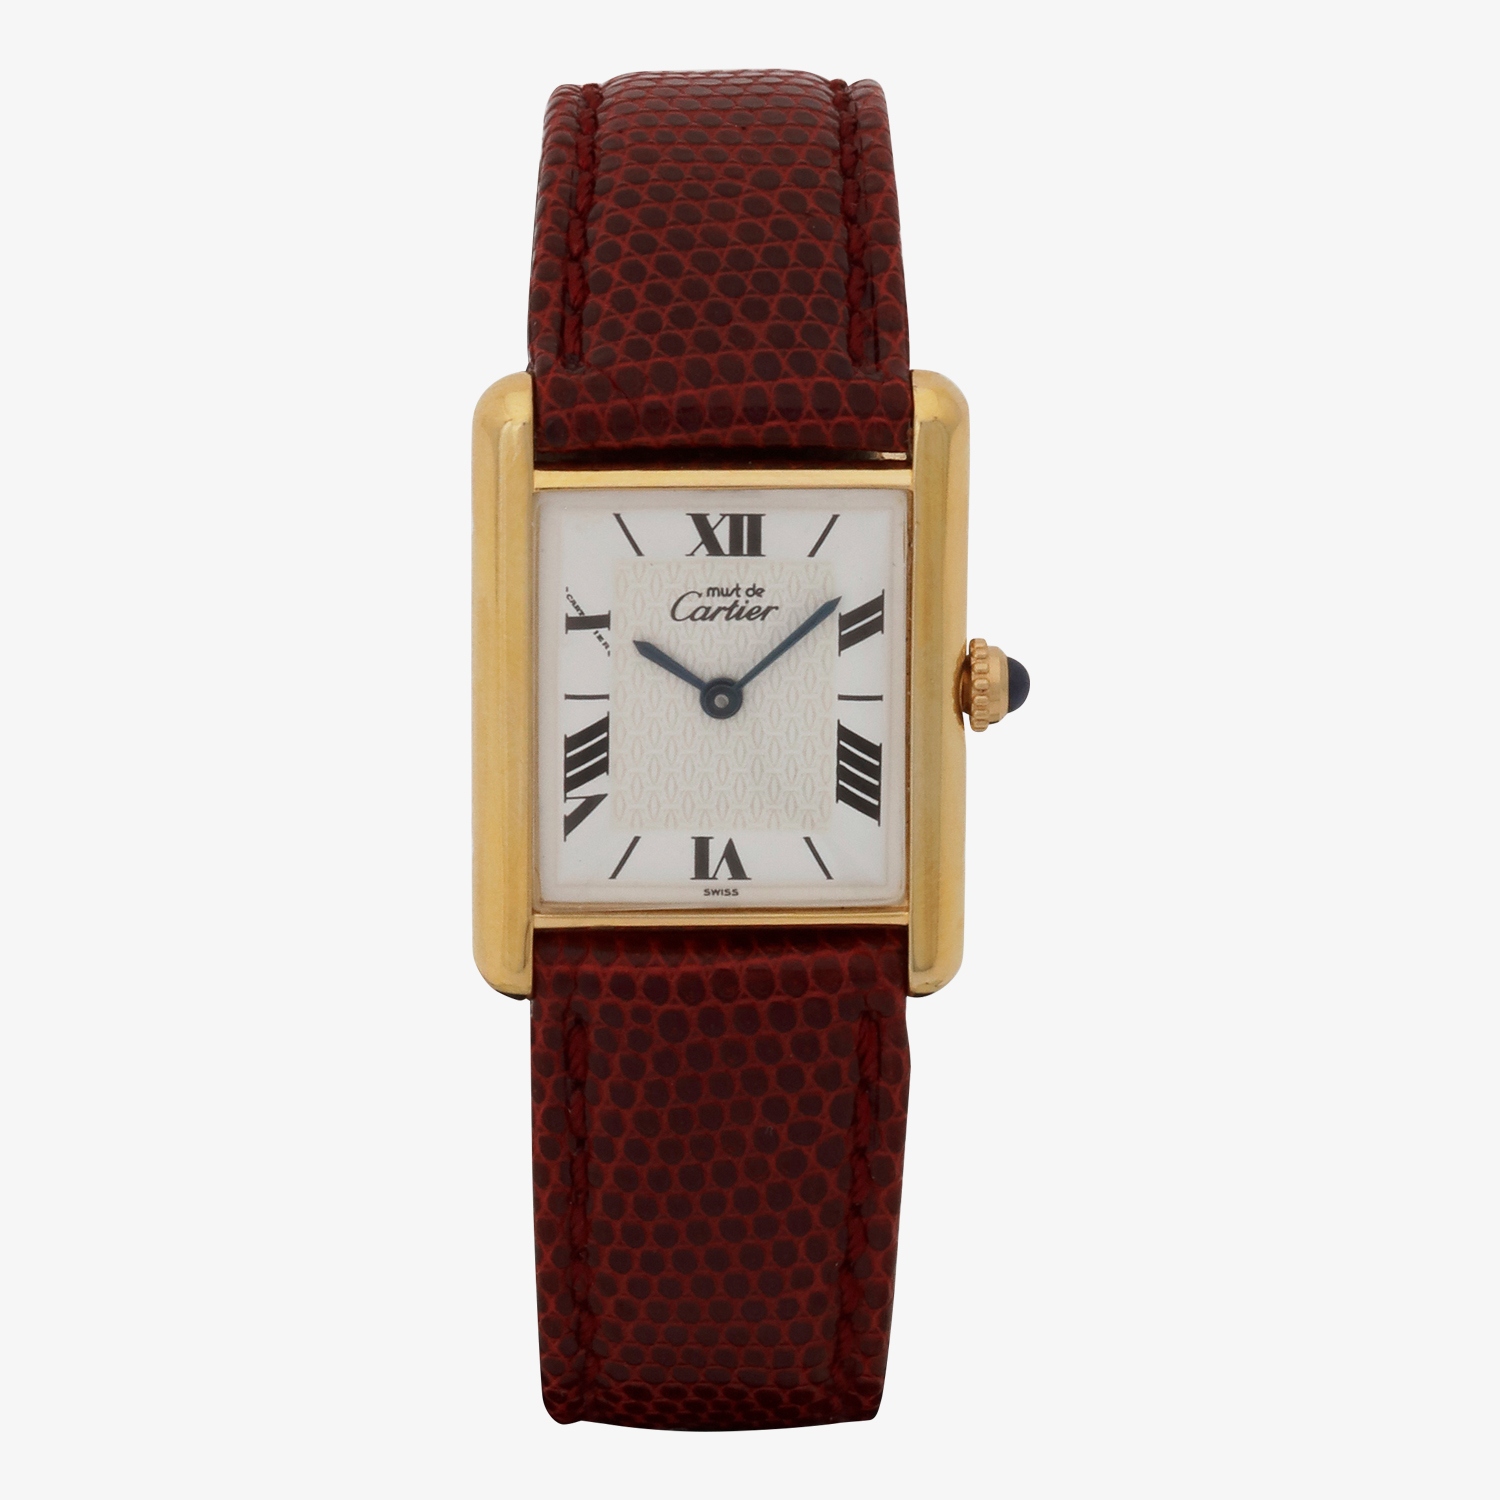 Cartier|must de Cartier TANK LM|Six Point Roman Dial|White- 90's|VINTAGE Cartier